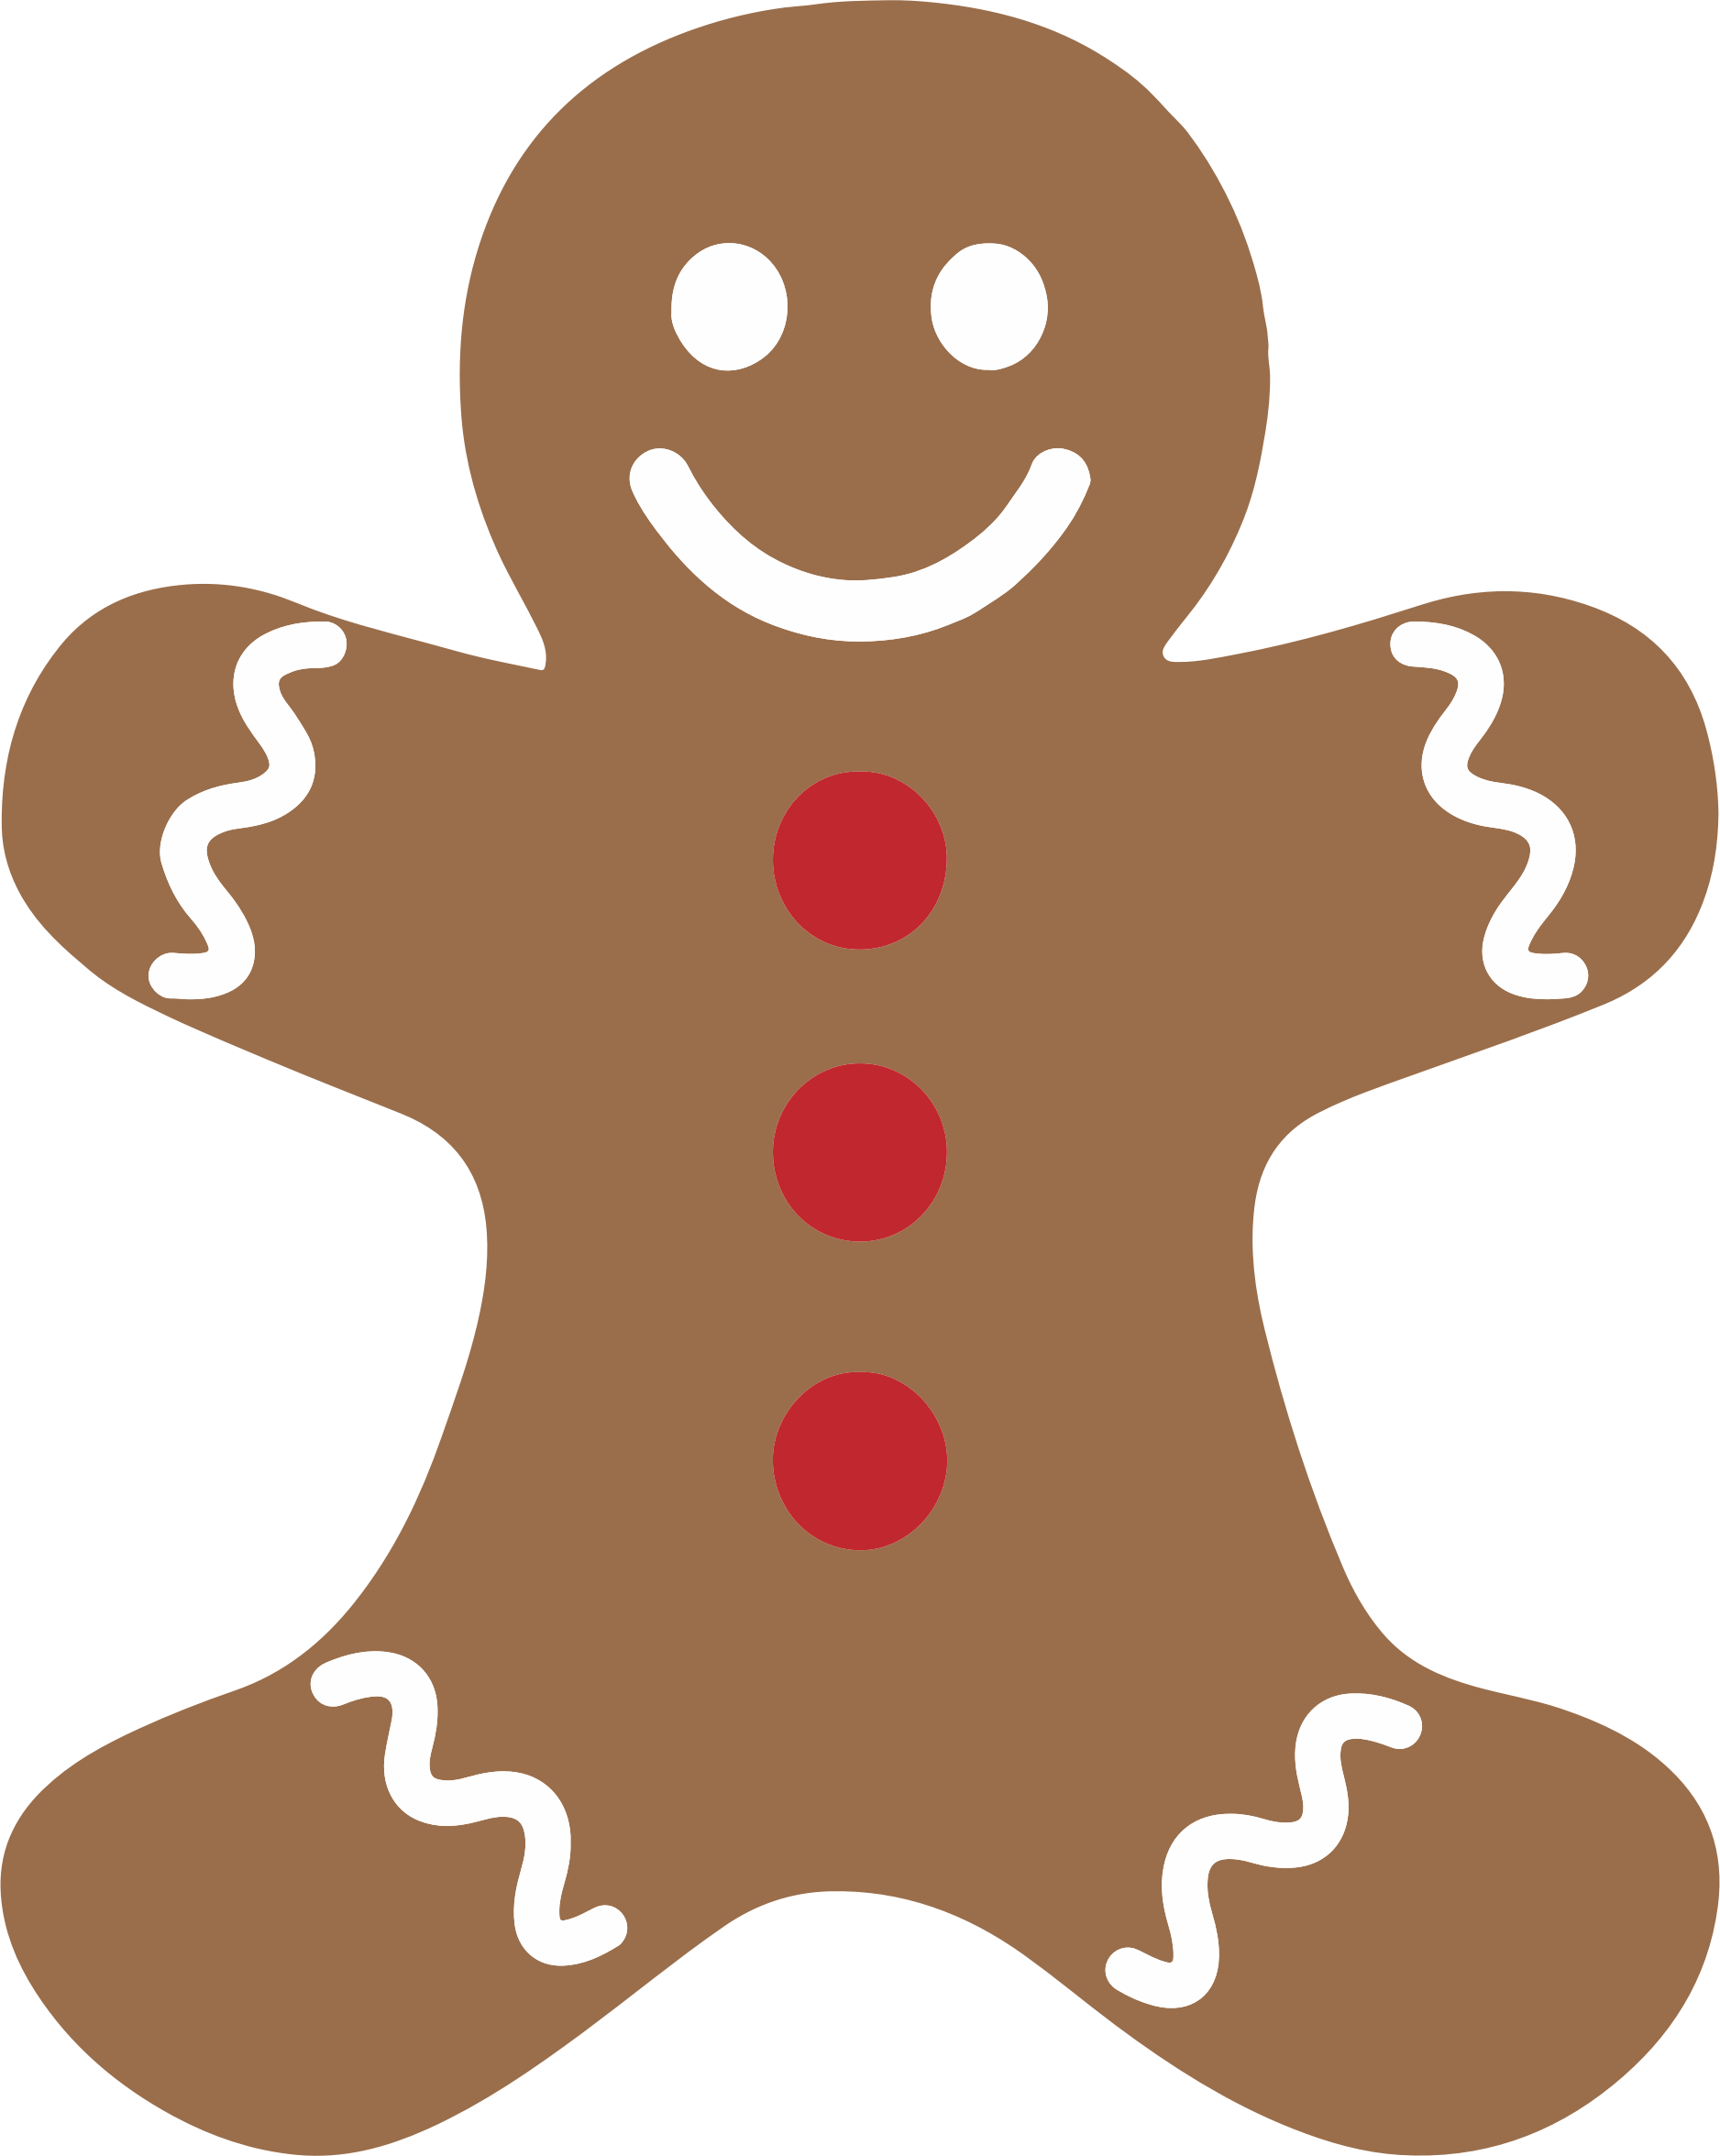 Man by gdj images. Door clipart gingerbread